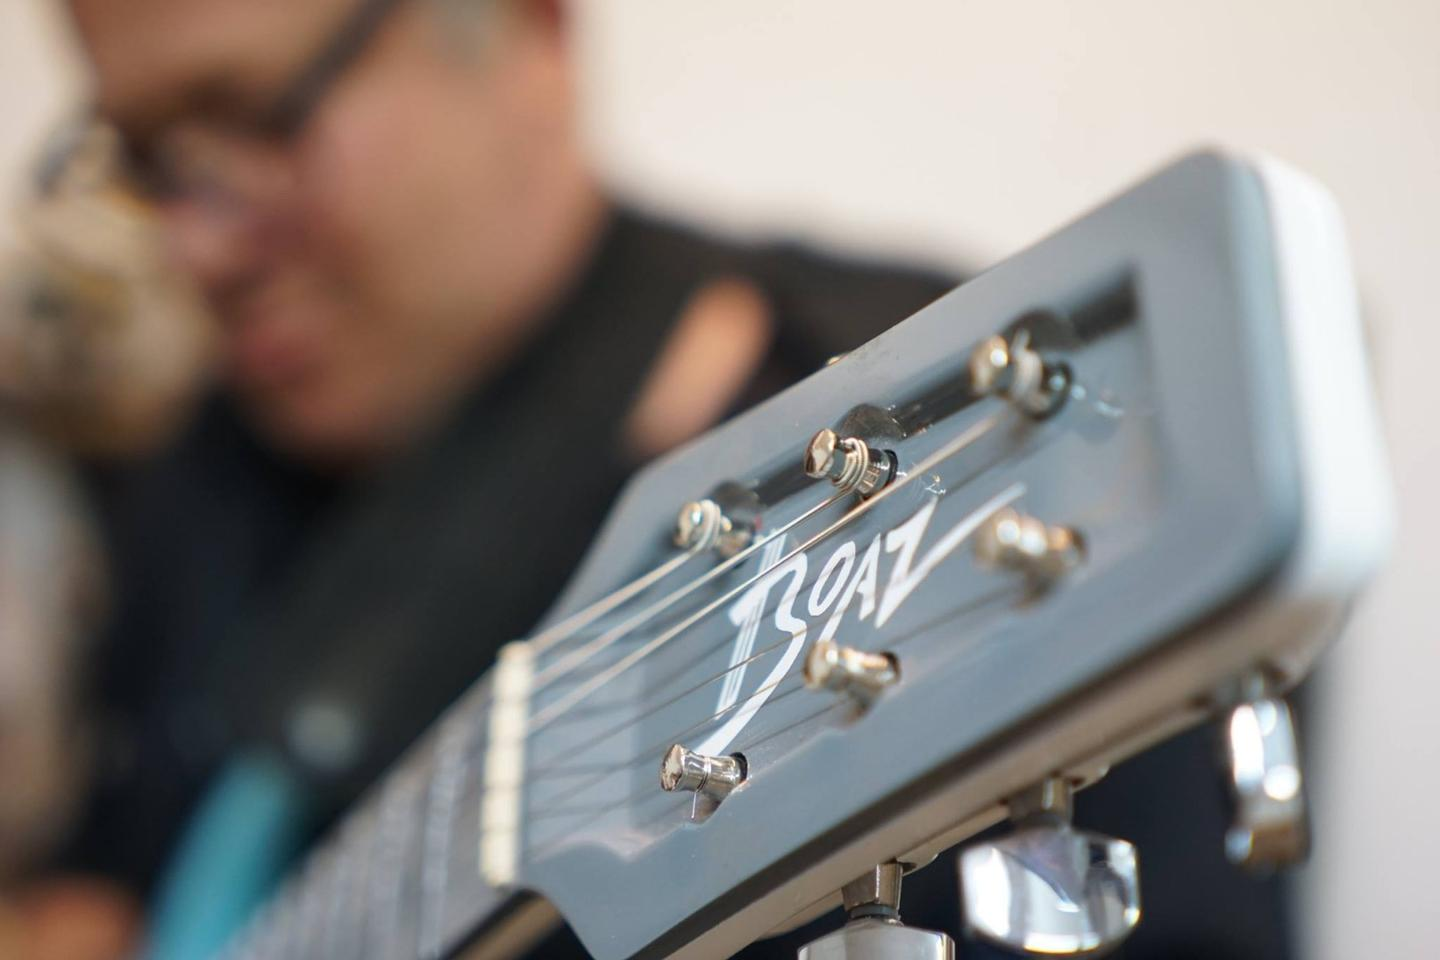 Luthier Boaz Elkayamfirst teased the One modular guitar in April, 2018